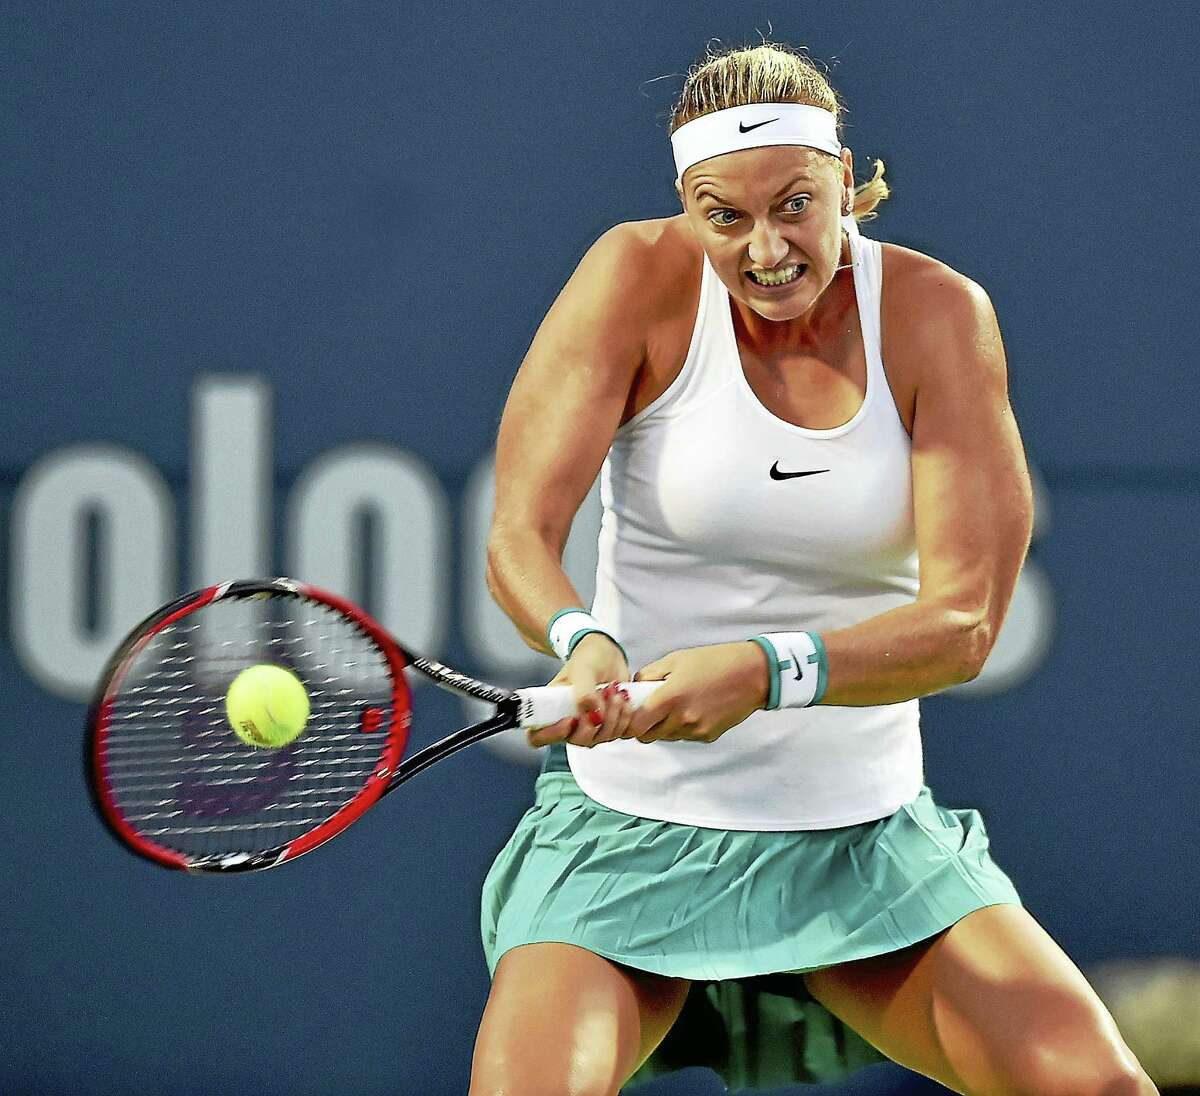 Czech Petra Kvitova hits a forehand return to Canadian Eugenie Bouchard in a 6-3, 6-2 win Wednesday evening in the second round of the Connecticut Open in New Haven.